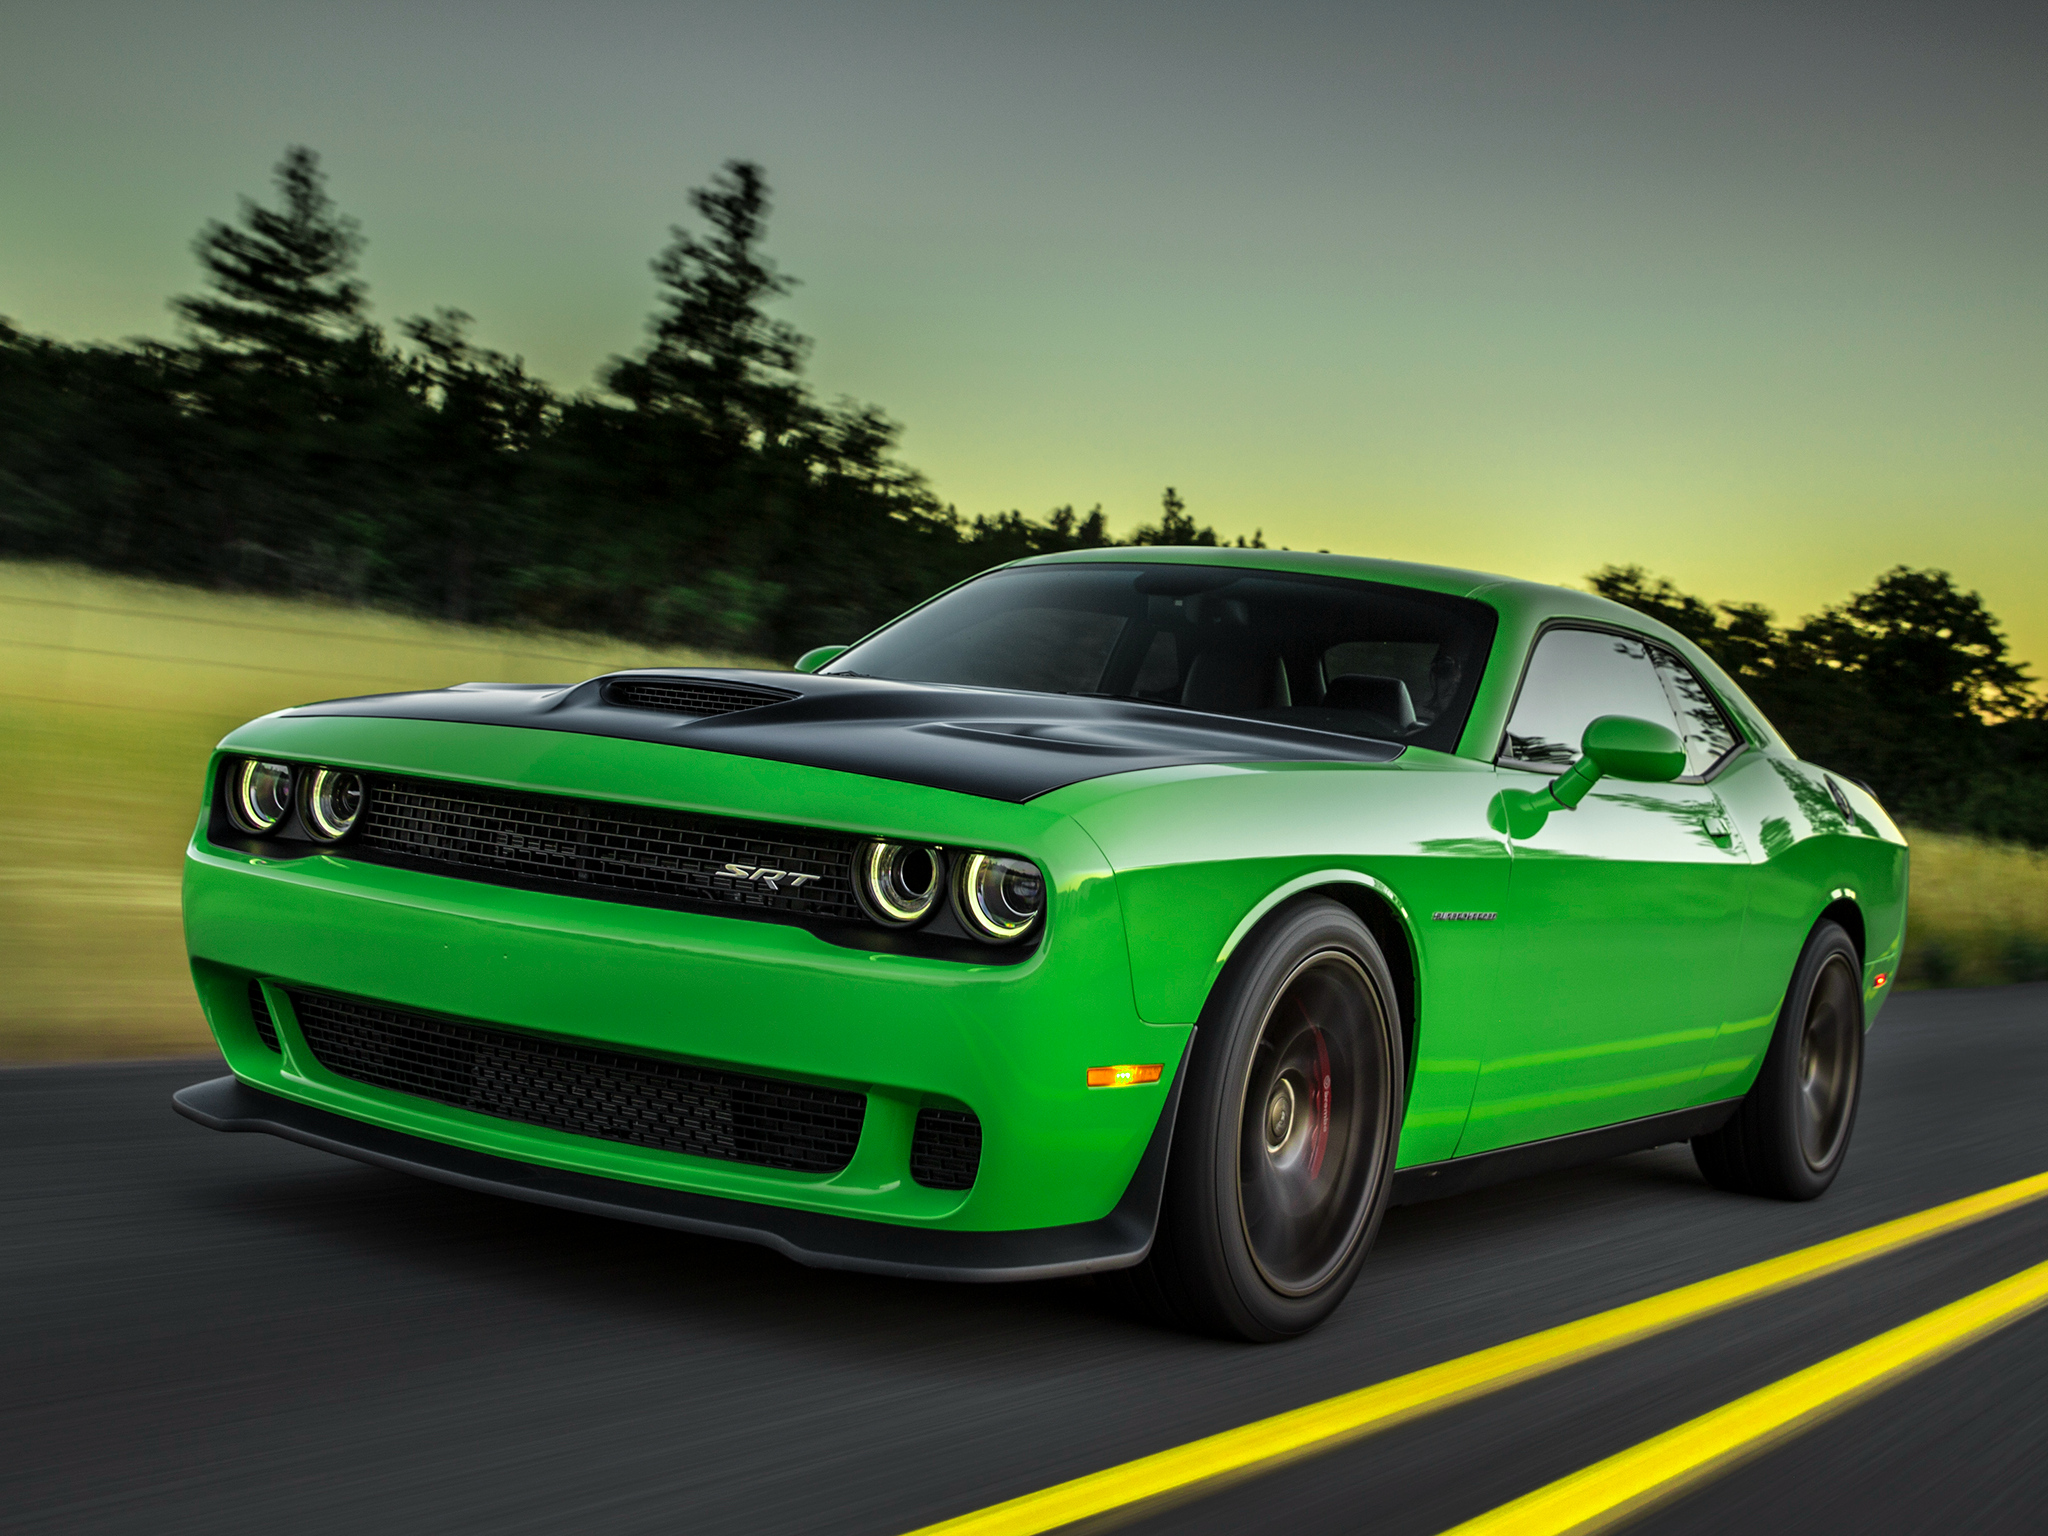 Classic Muscle Cars Hd Wallpapers News Dodge Teases More Insane Challenger Demon